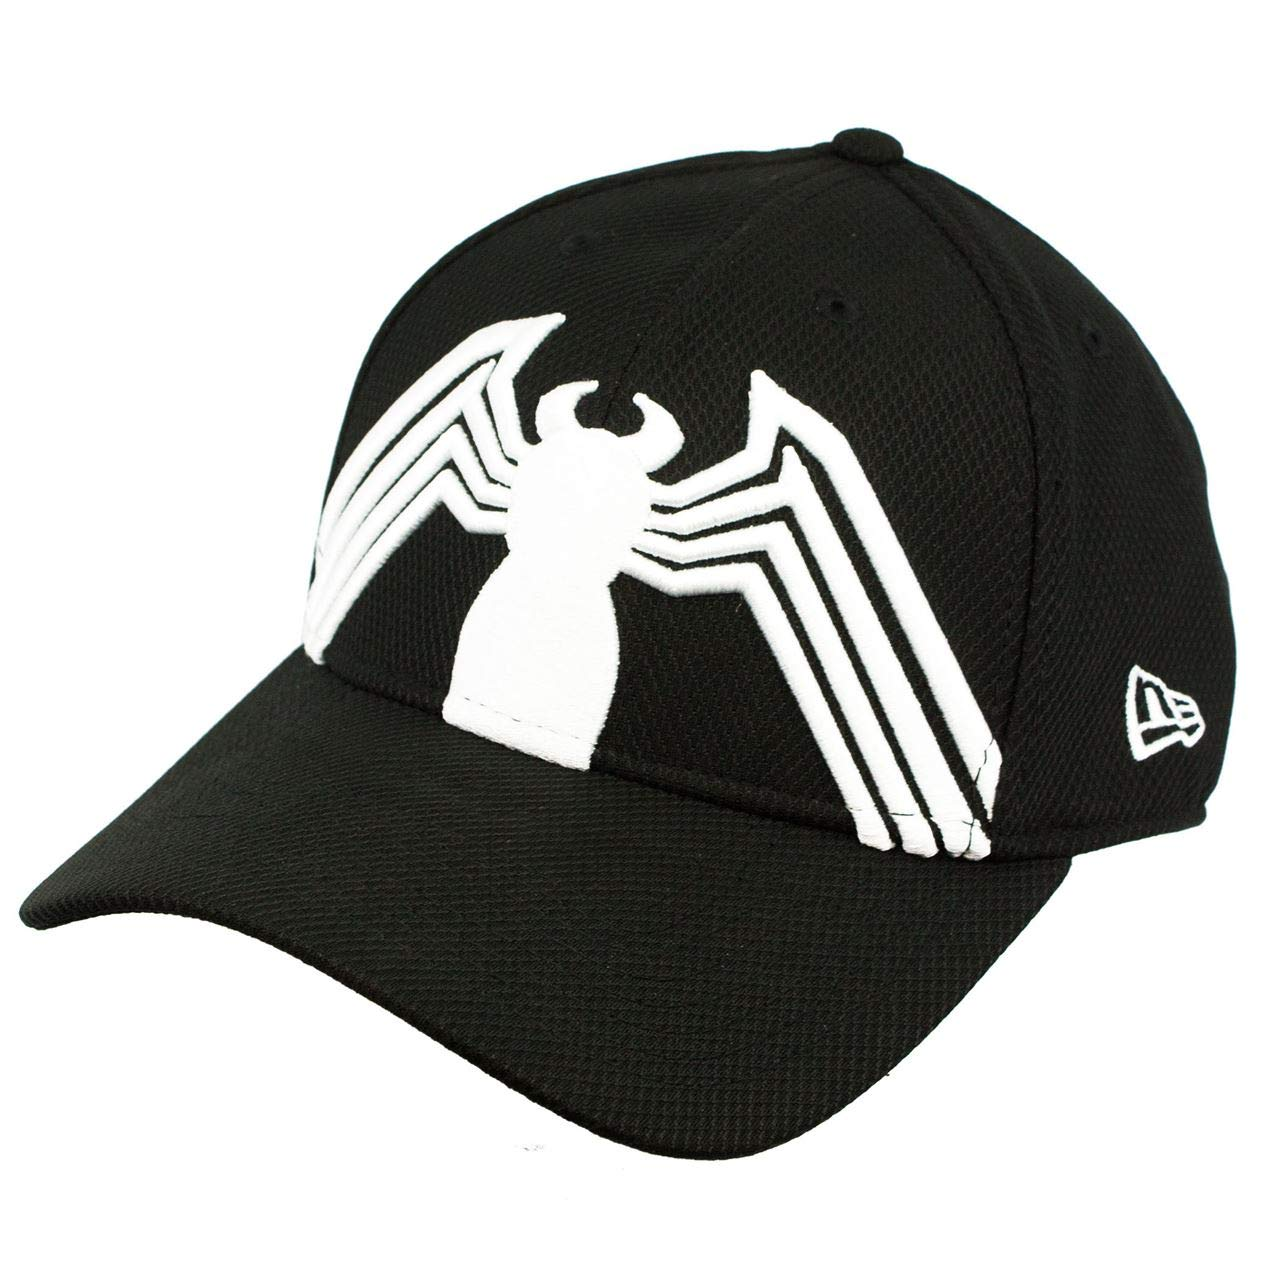 Spider-Man Black Suit Armor with Kraven Lining 39Thirty Fitted Hat at  Amazon Men s Clothing store  680ddb12ecf5